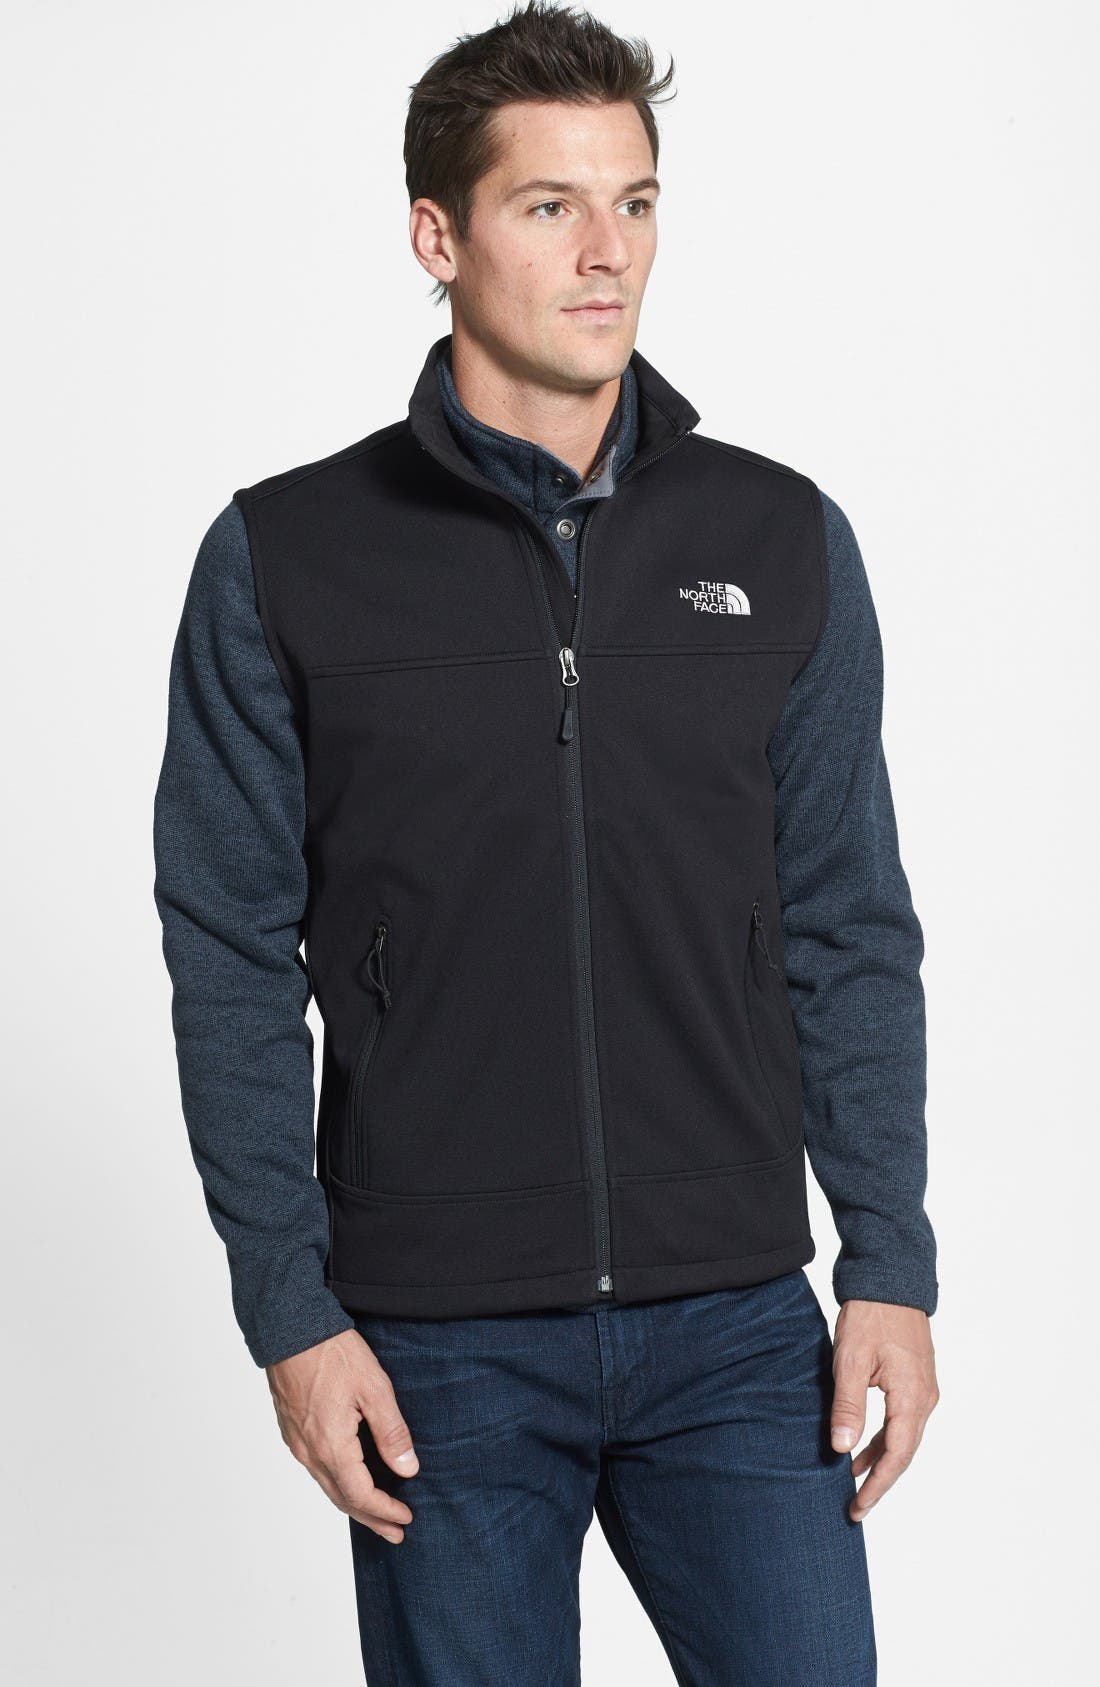 Alternate Image 1 Selected - The North Face 'Canyonwall' Wind Resistant Vest